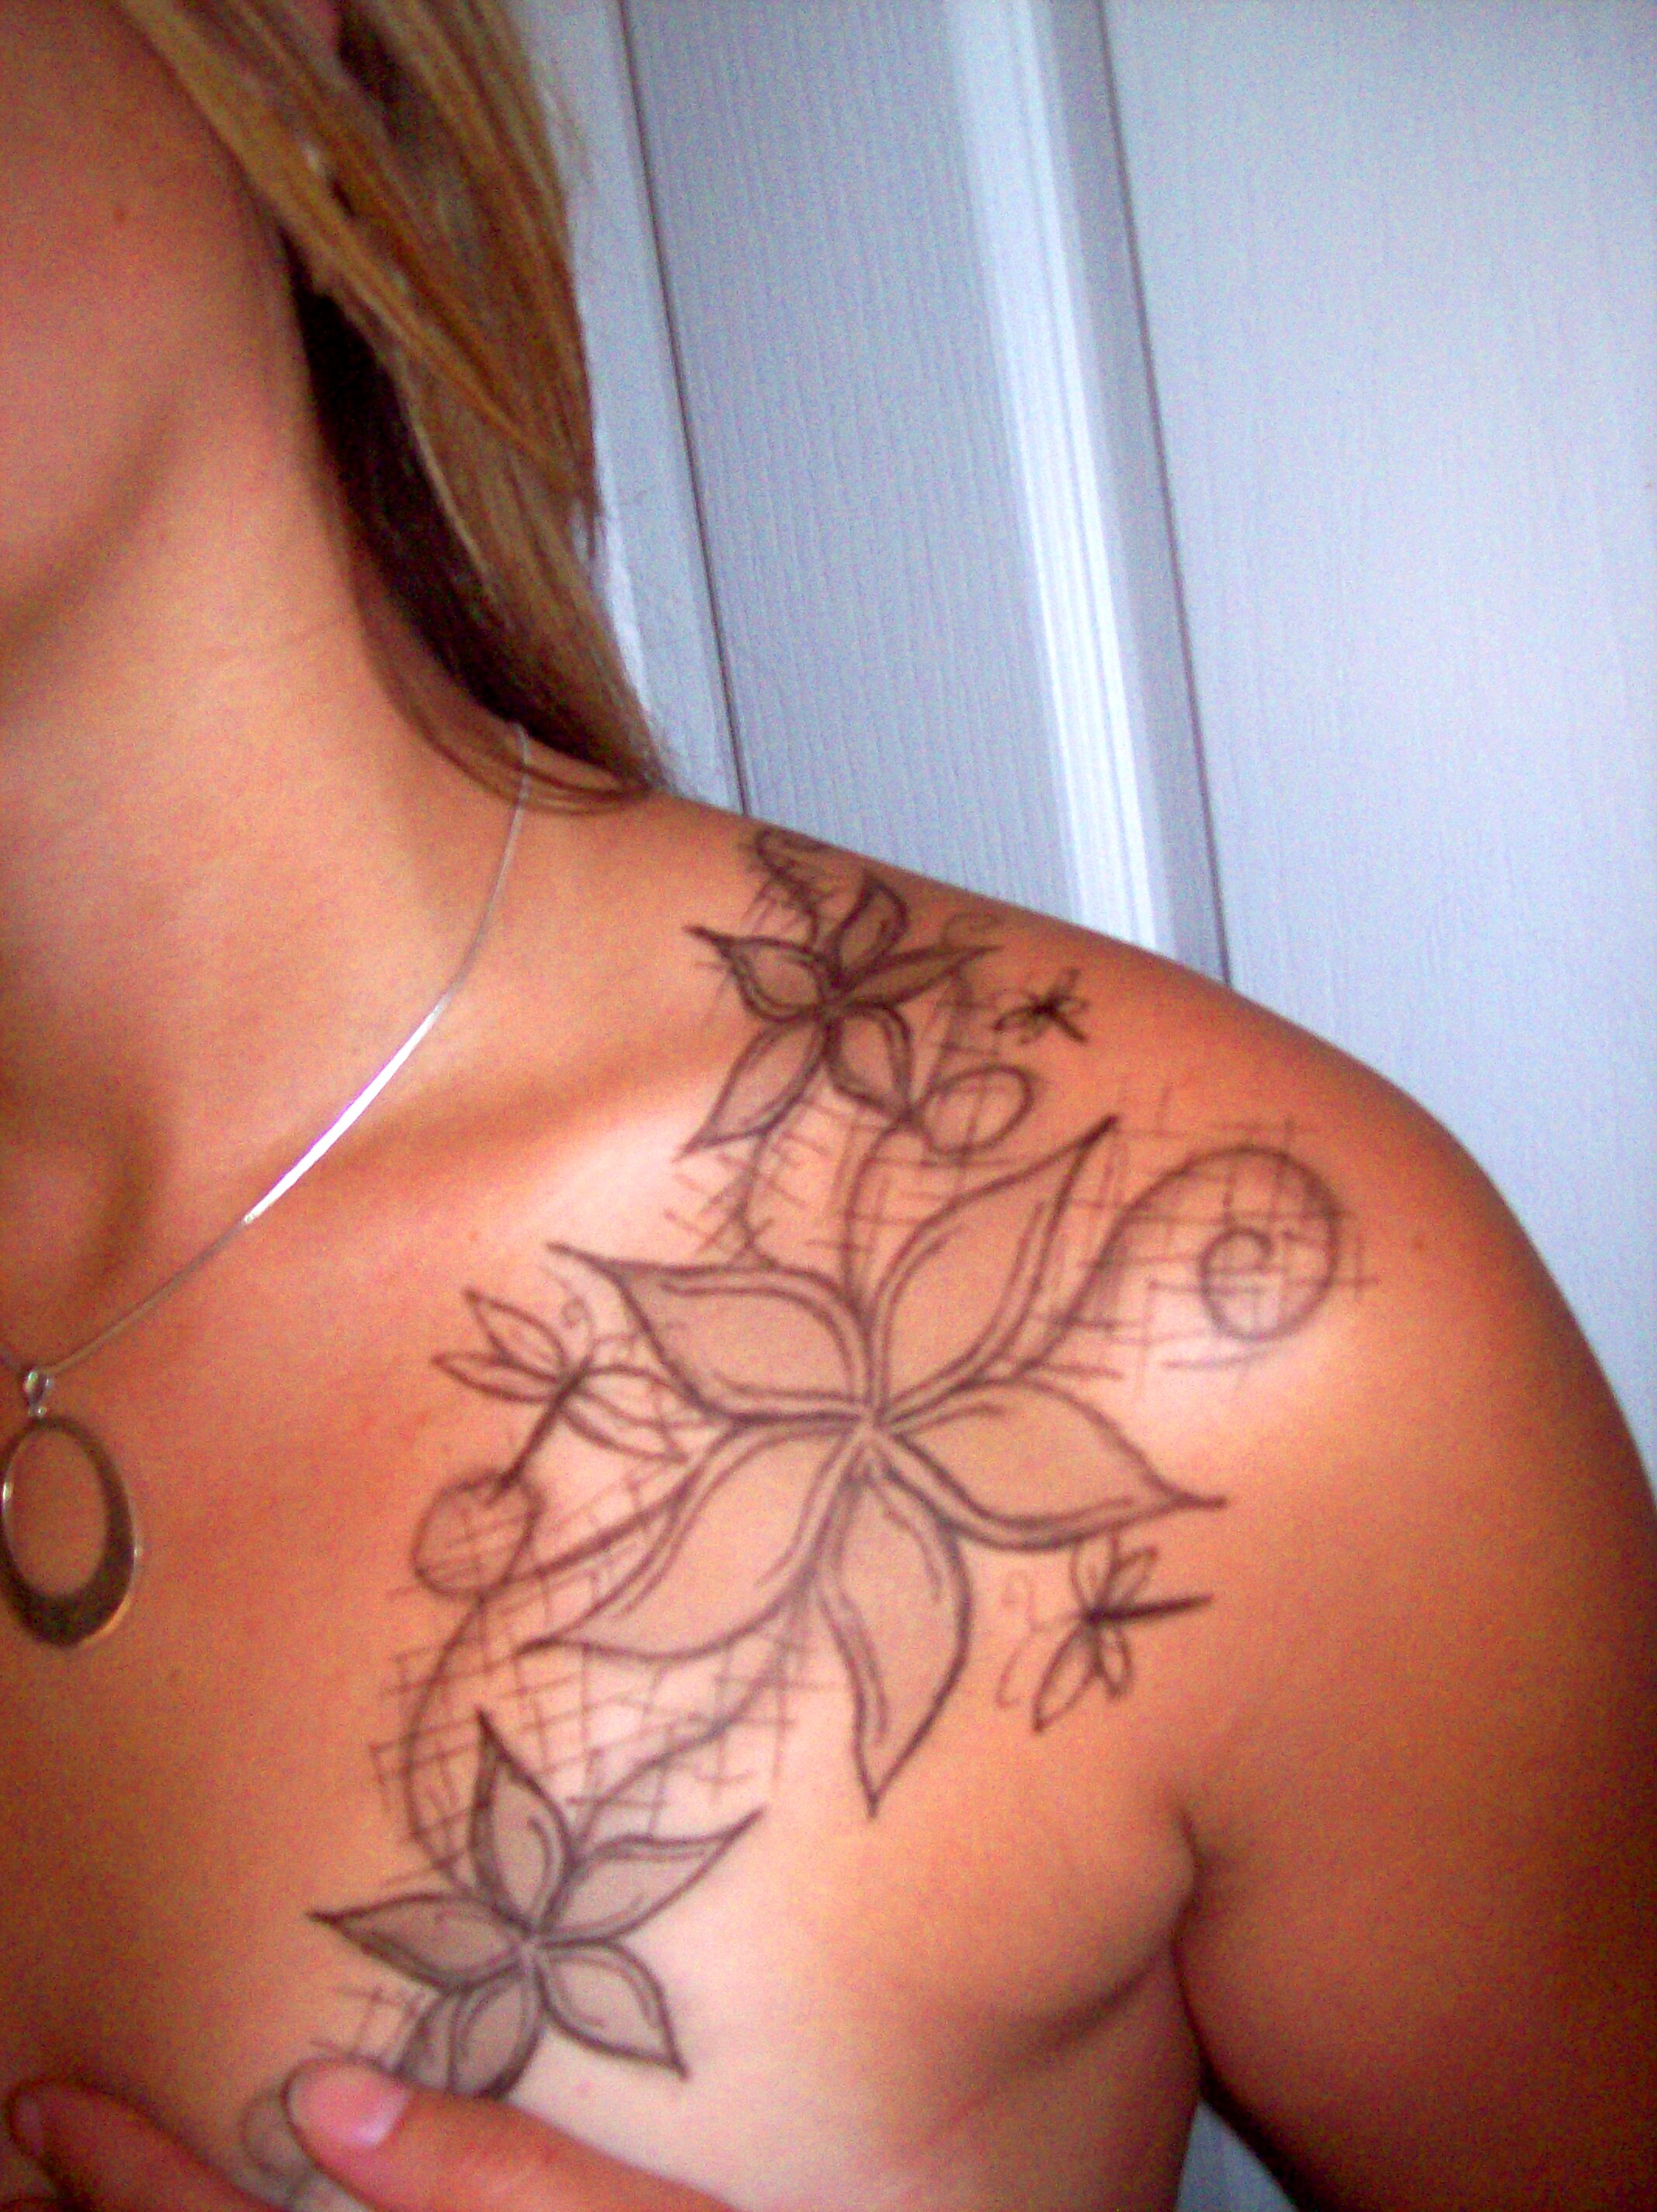 Flower tattoos designs ideas and meaning tattoos for you for Tattoo design in shoulder